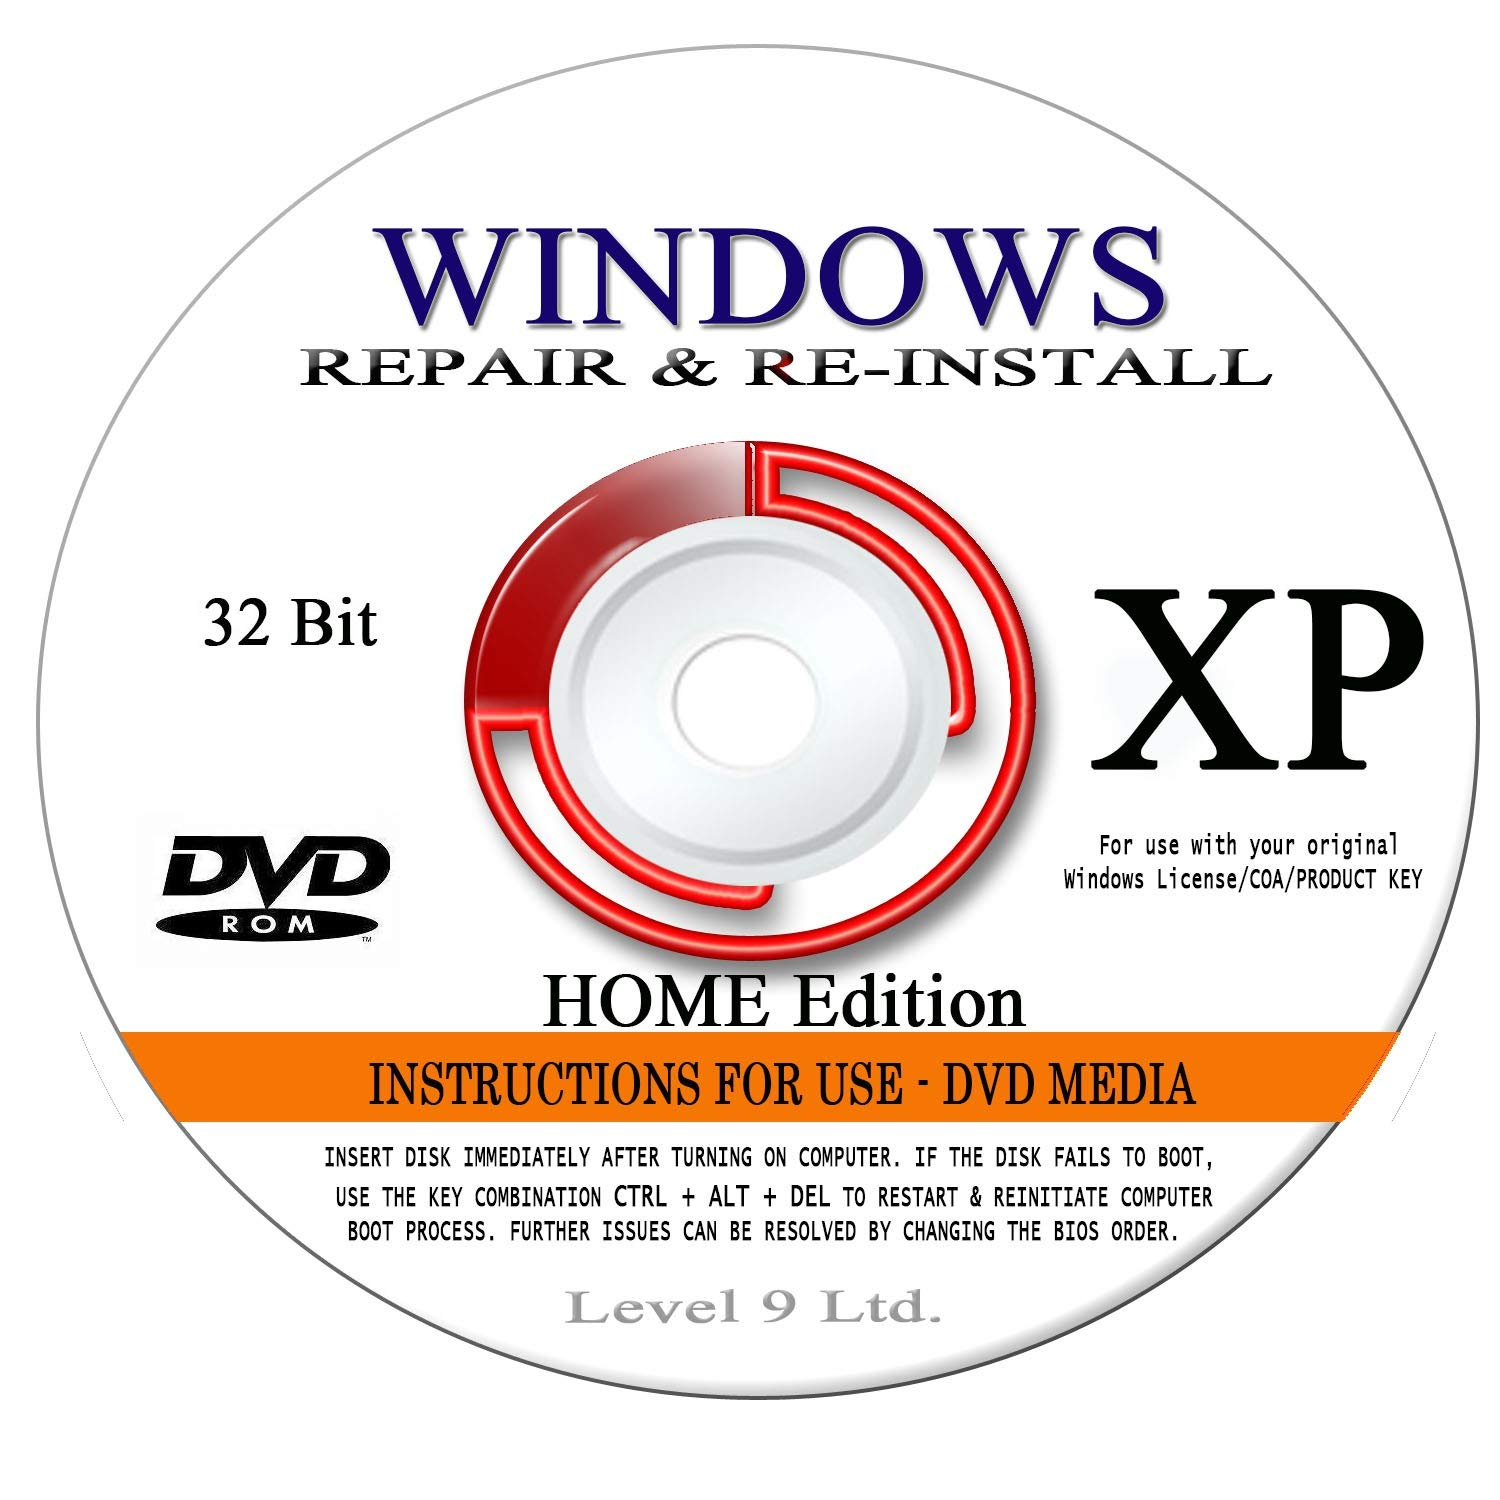 Asus recovery disk – guide for windows xp, vista, 7, 8.